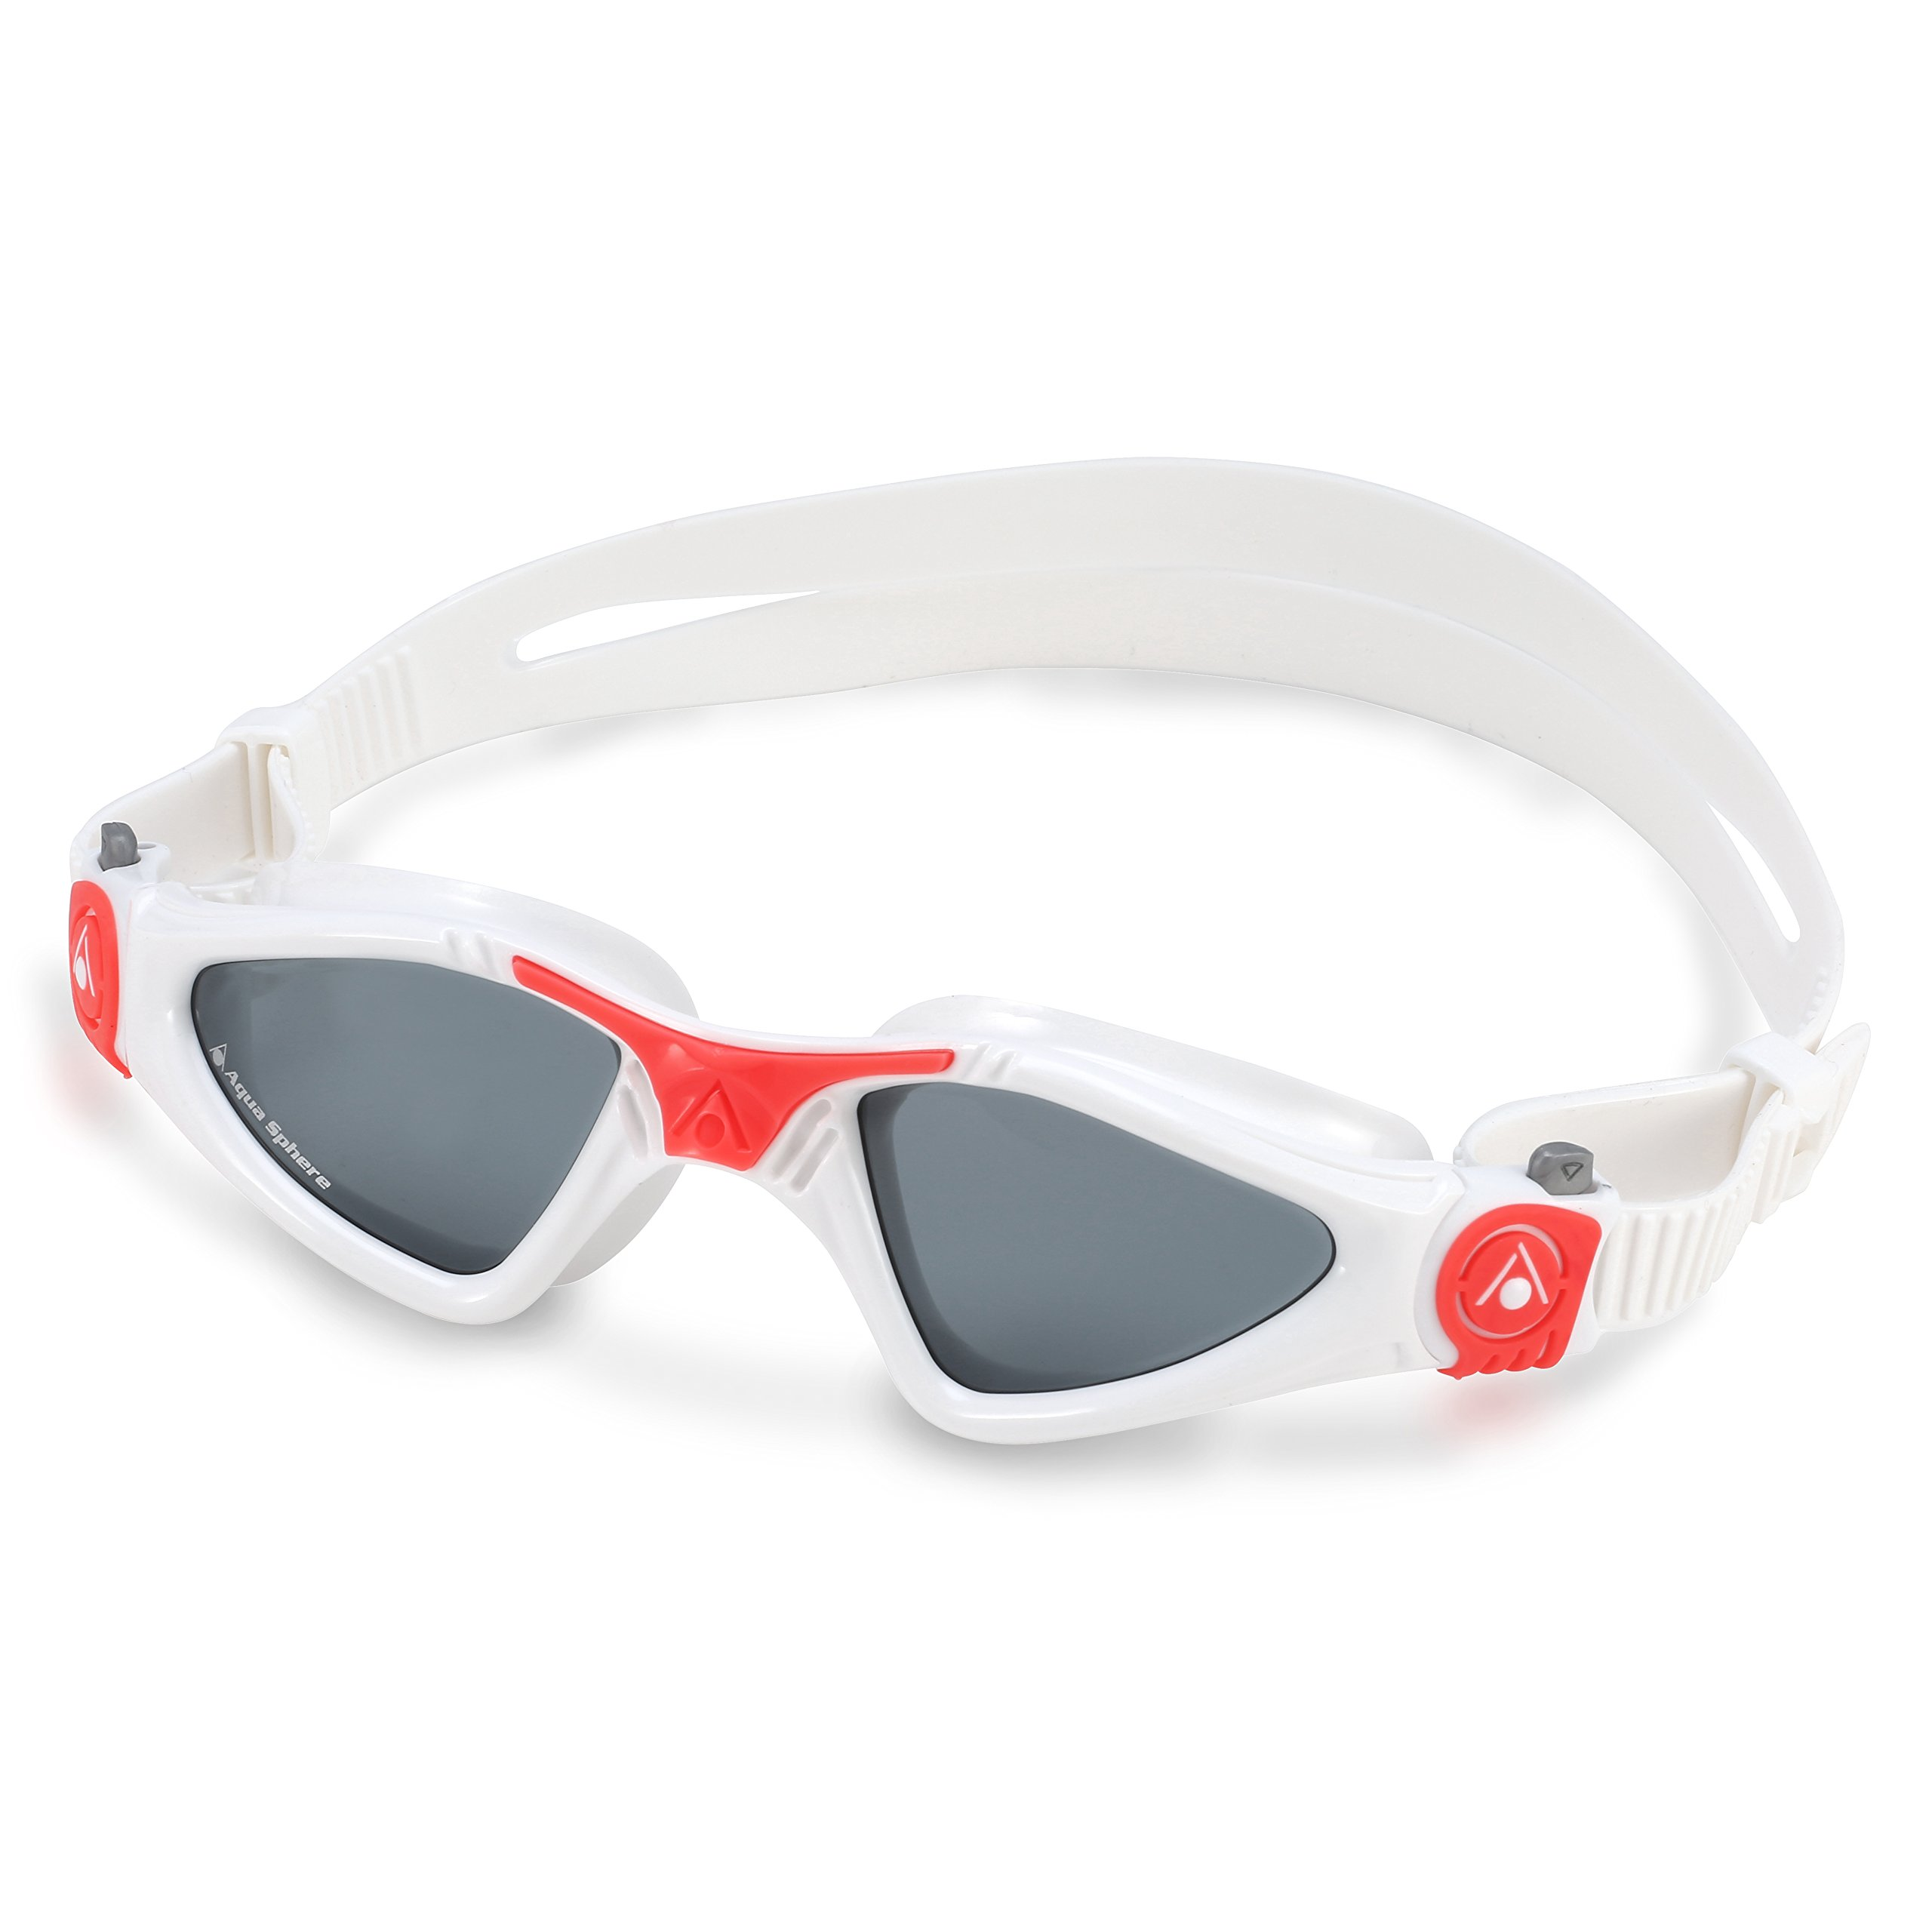 Aqua Sphere Kayenne Ladies Swimming Goggles Smoke Lens, White & Coral UV Protection Anti Fog Swim Goggles for Women by Aqua Sphere (Image #6)